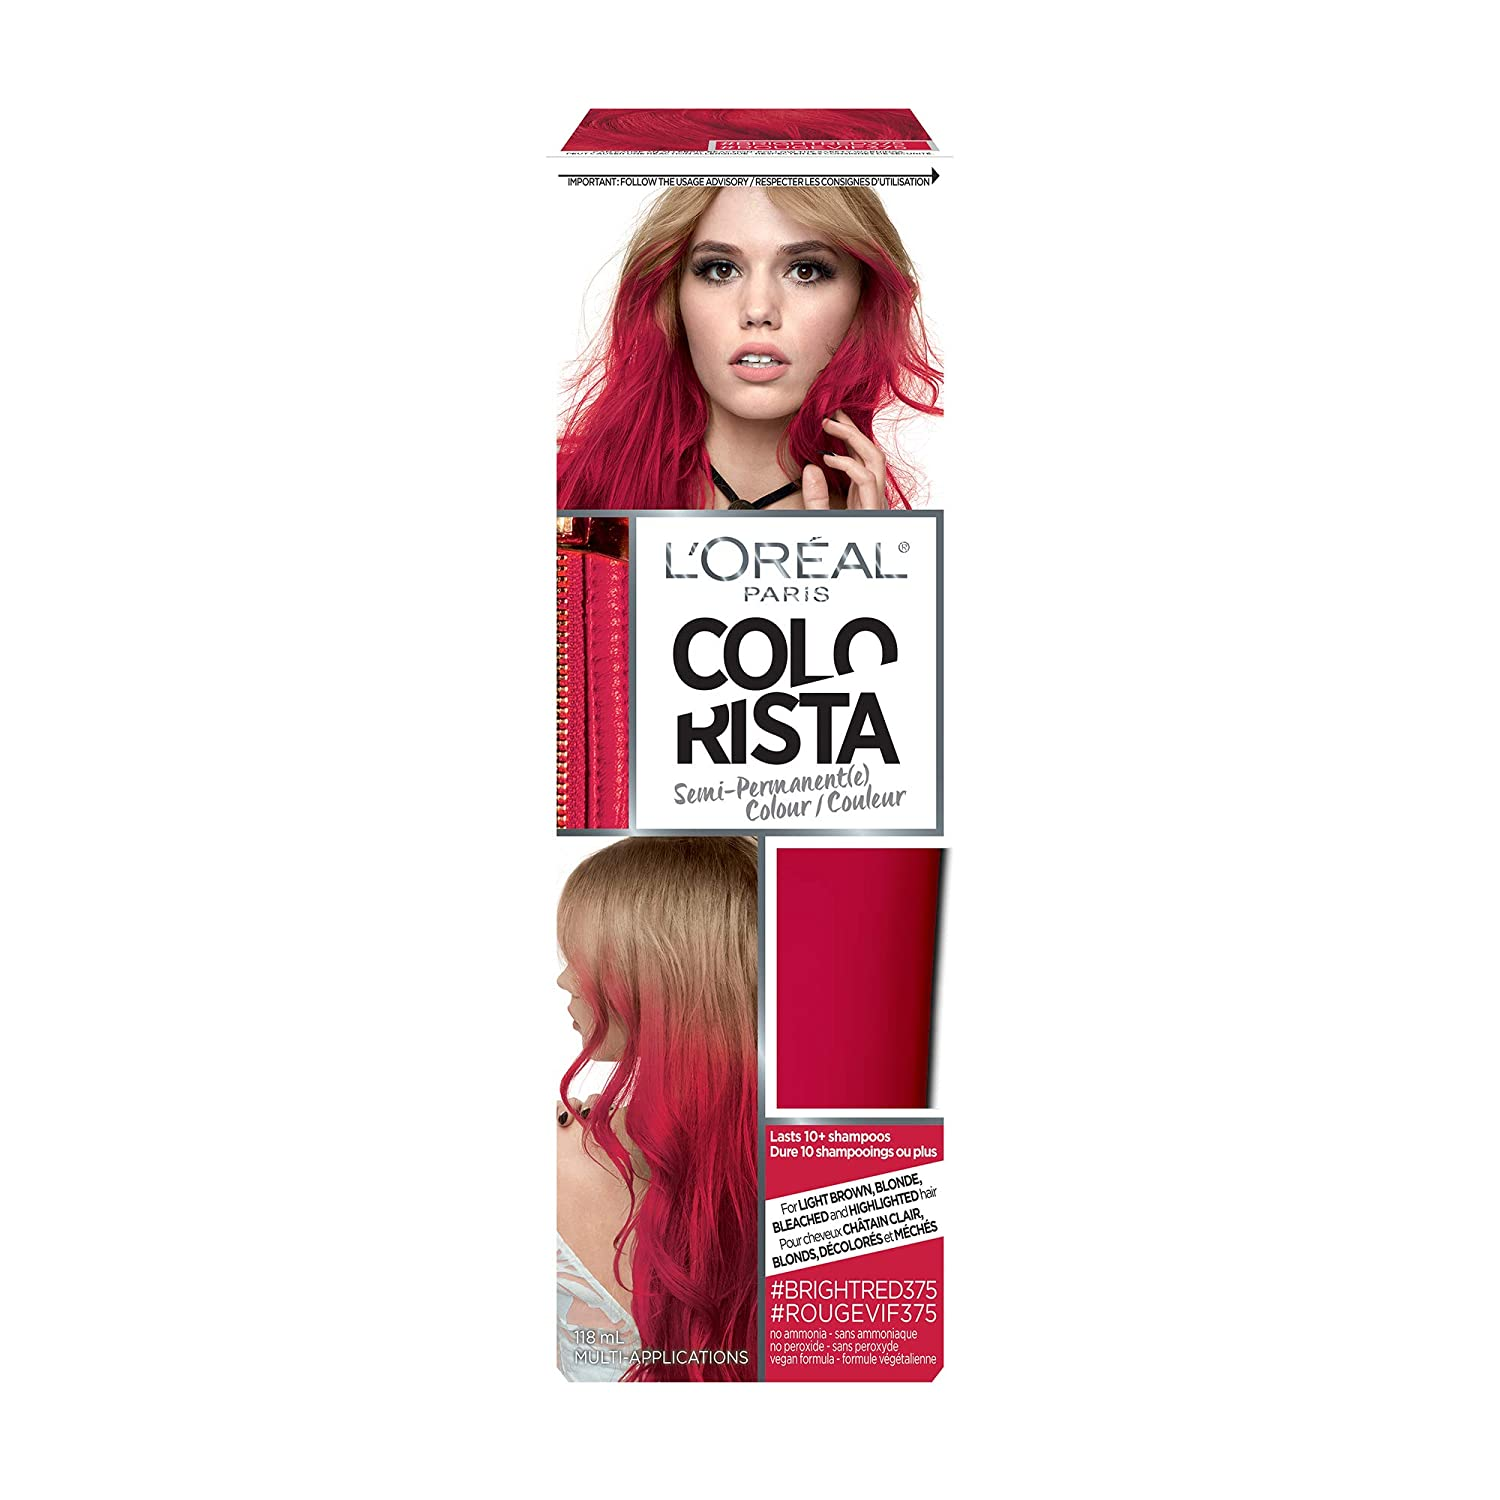 L'Oreal Paris Colorista Semi-Permanent Hair Color for Platinum, Light & Medium Blondes, Bleached hair or Highlighted Hair, Bright Red